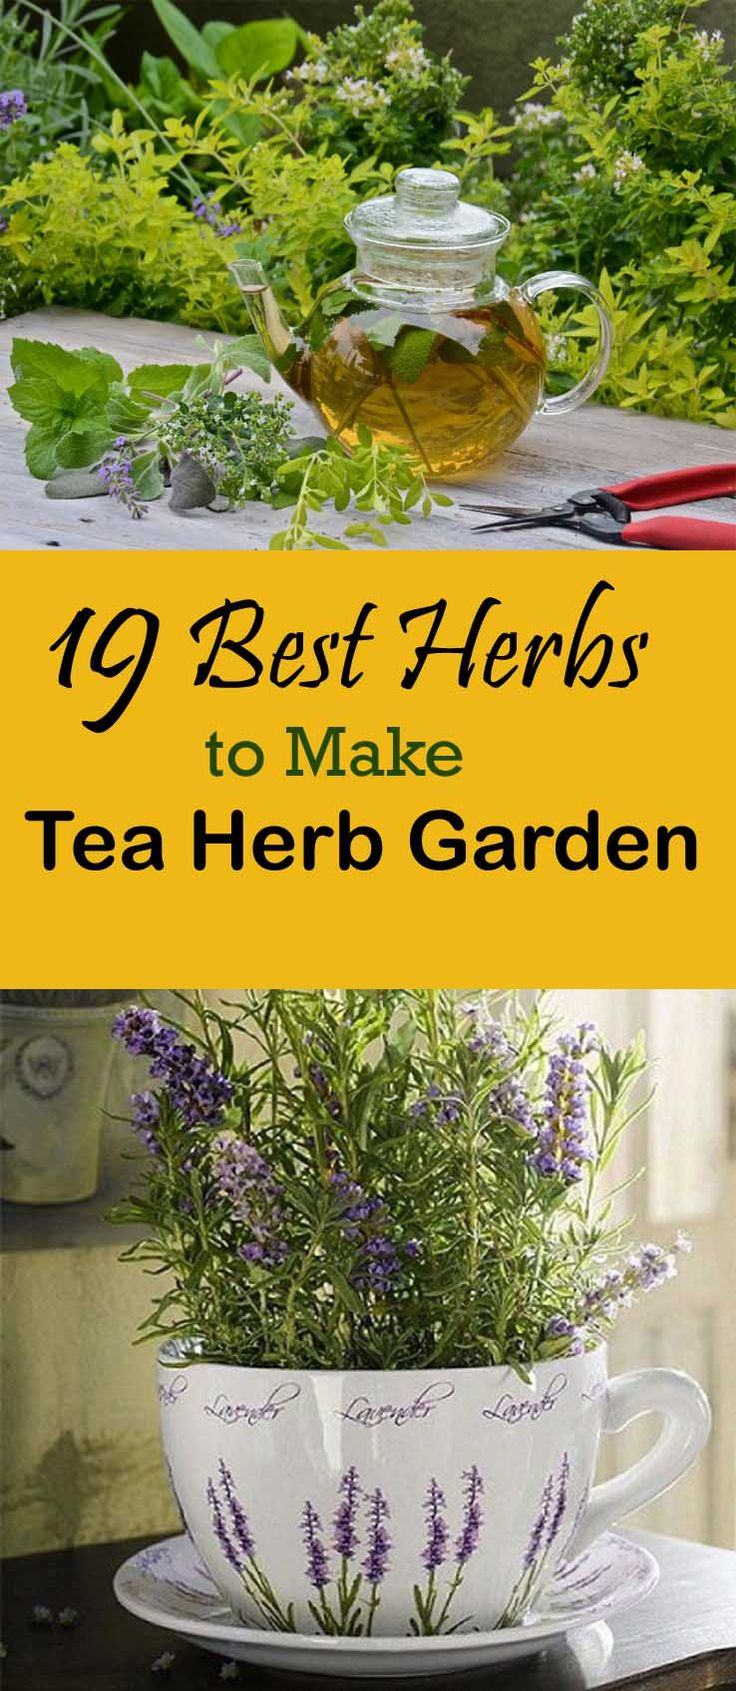 Like to sip herbal tea? Check out 19 Best Herbs To Make Tea Herb Garden